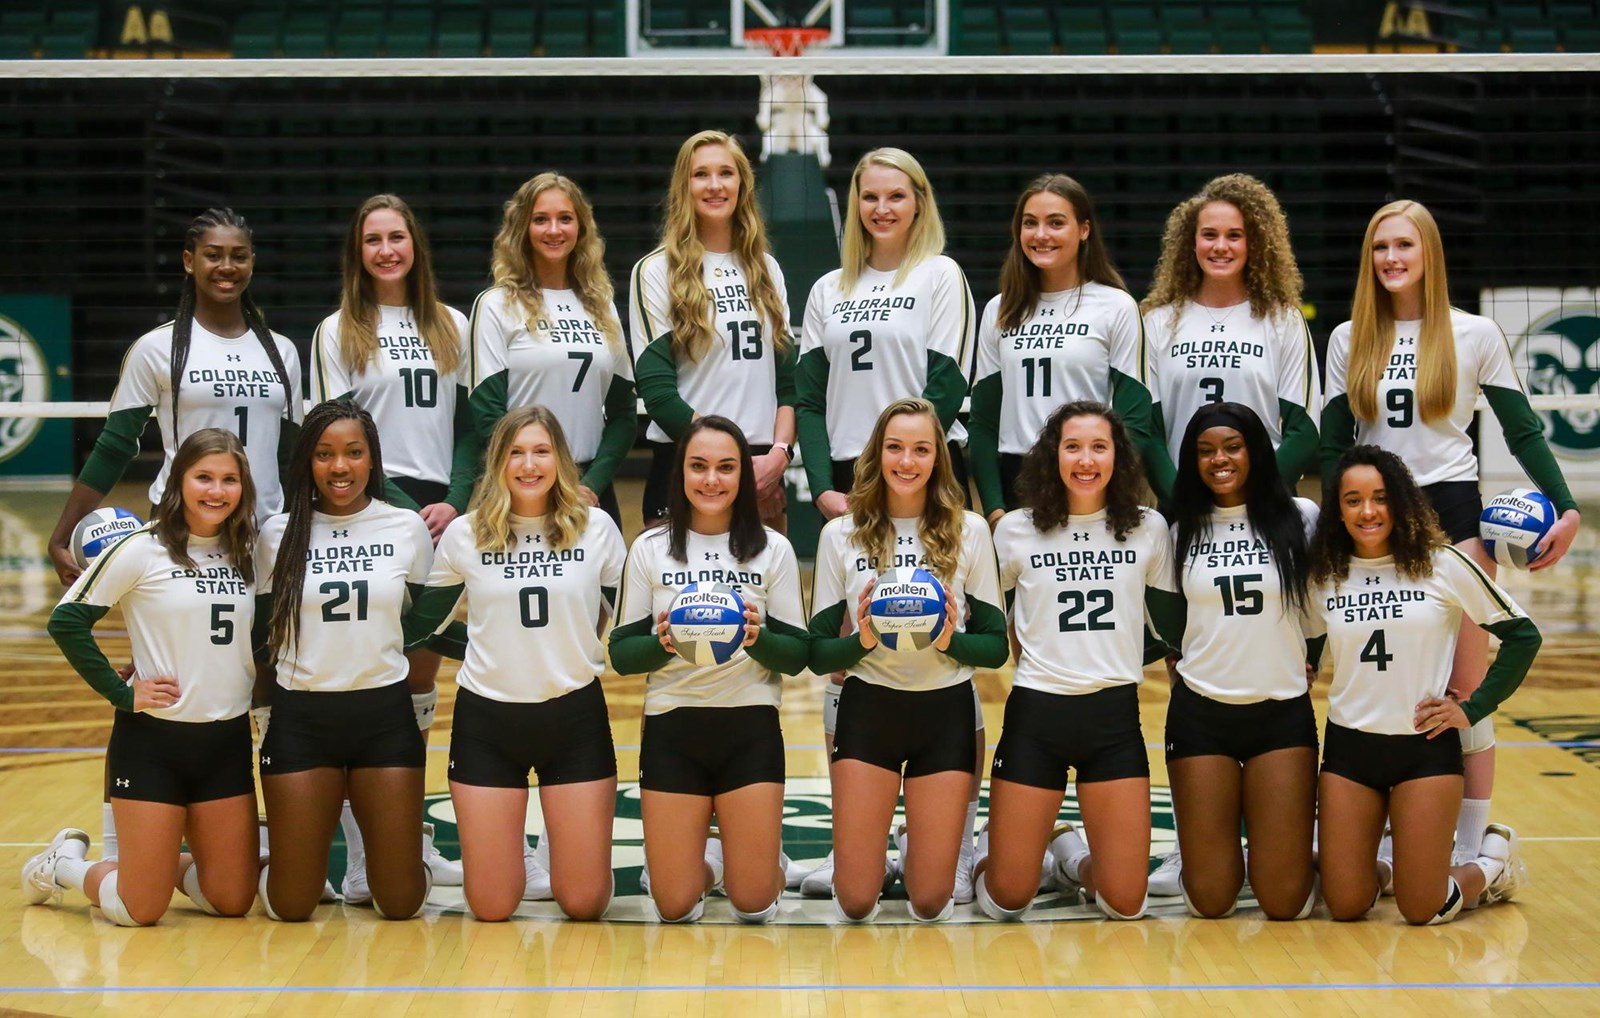 2019 Volleyball Roster Colorado State University Athletics